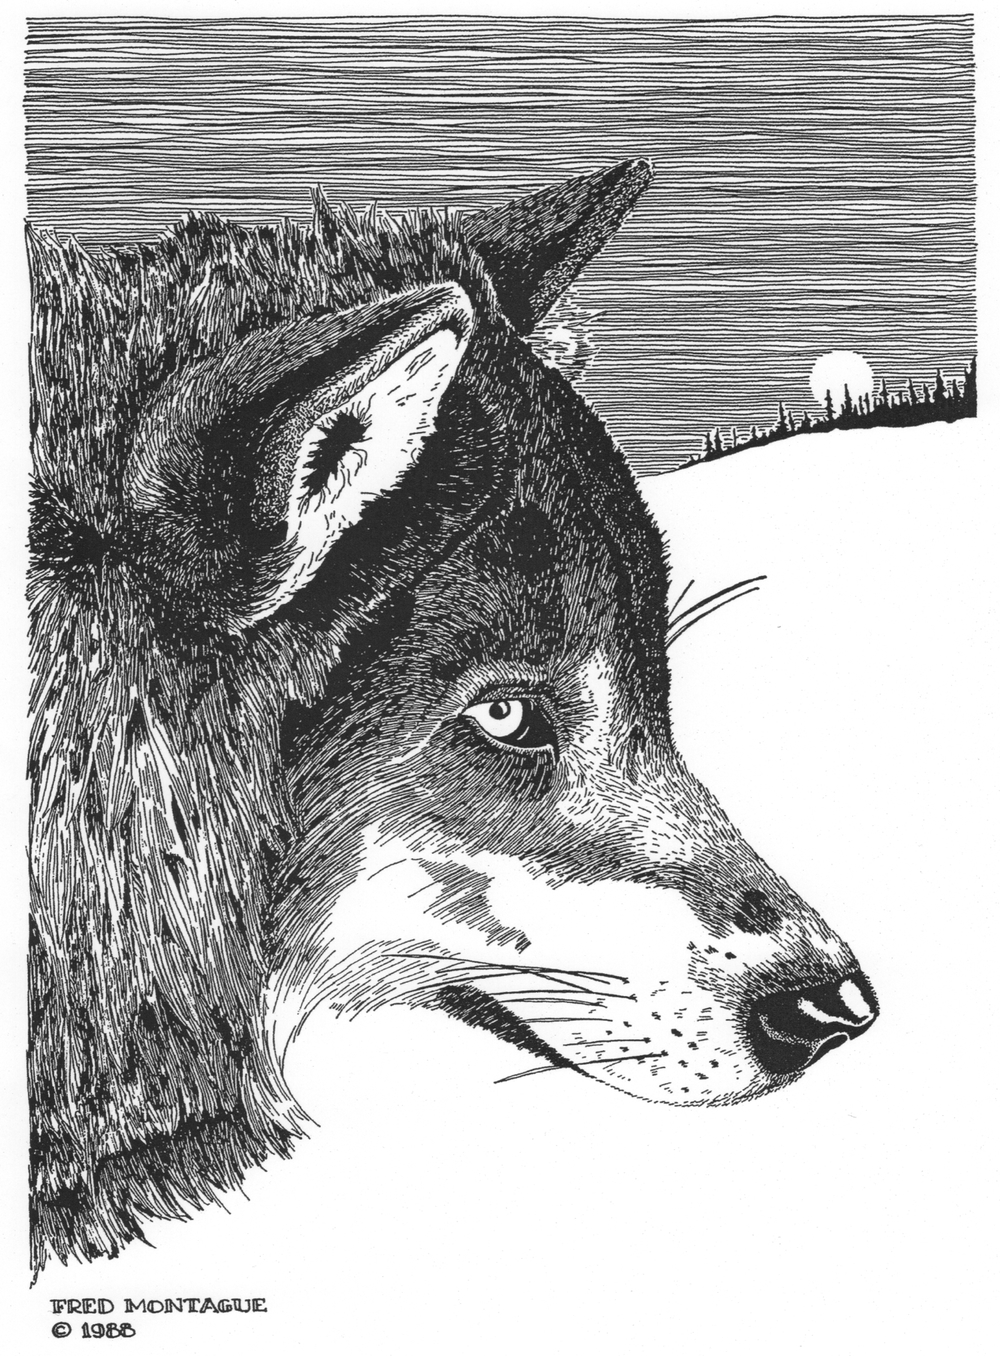 Gray Wolf• © Fred Montague  Letterpress Print • image 8.5 x 11.5 • matted 16 x 20  Sold Out